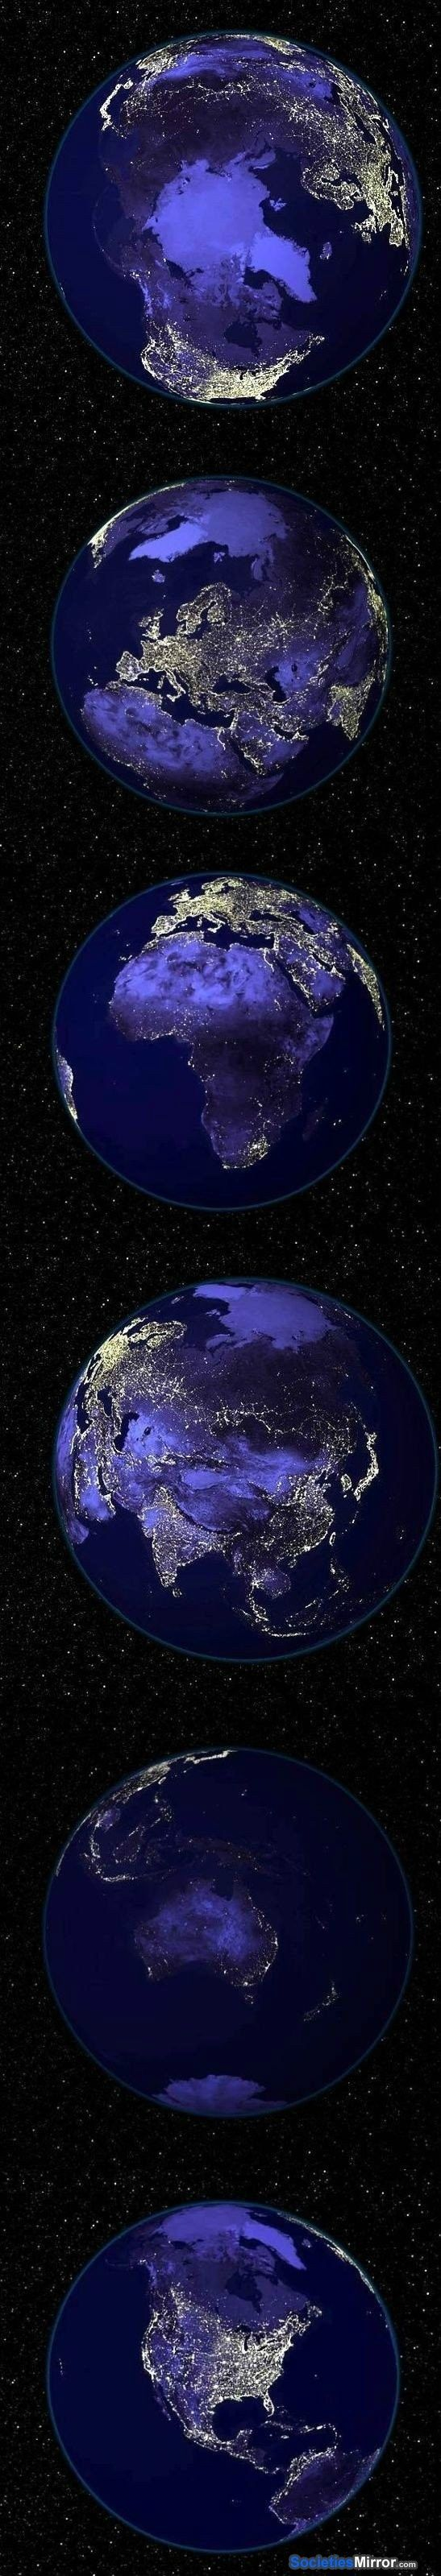 Man-Made Lights of Cities as Seen Across the Earth from Space